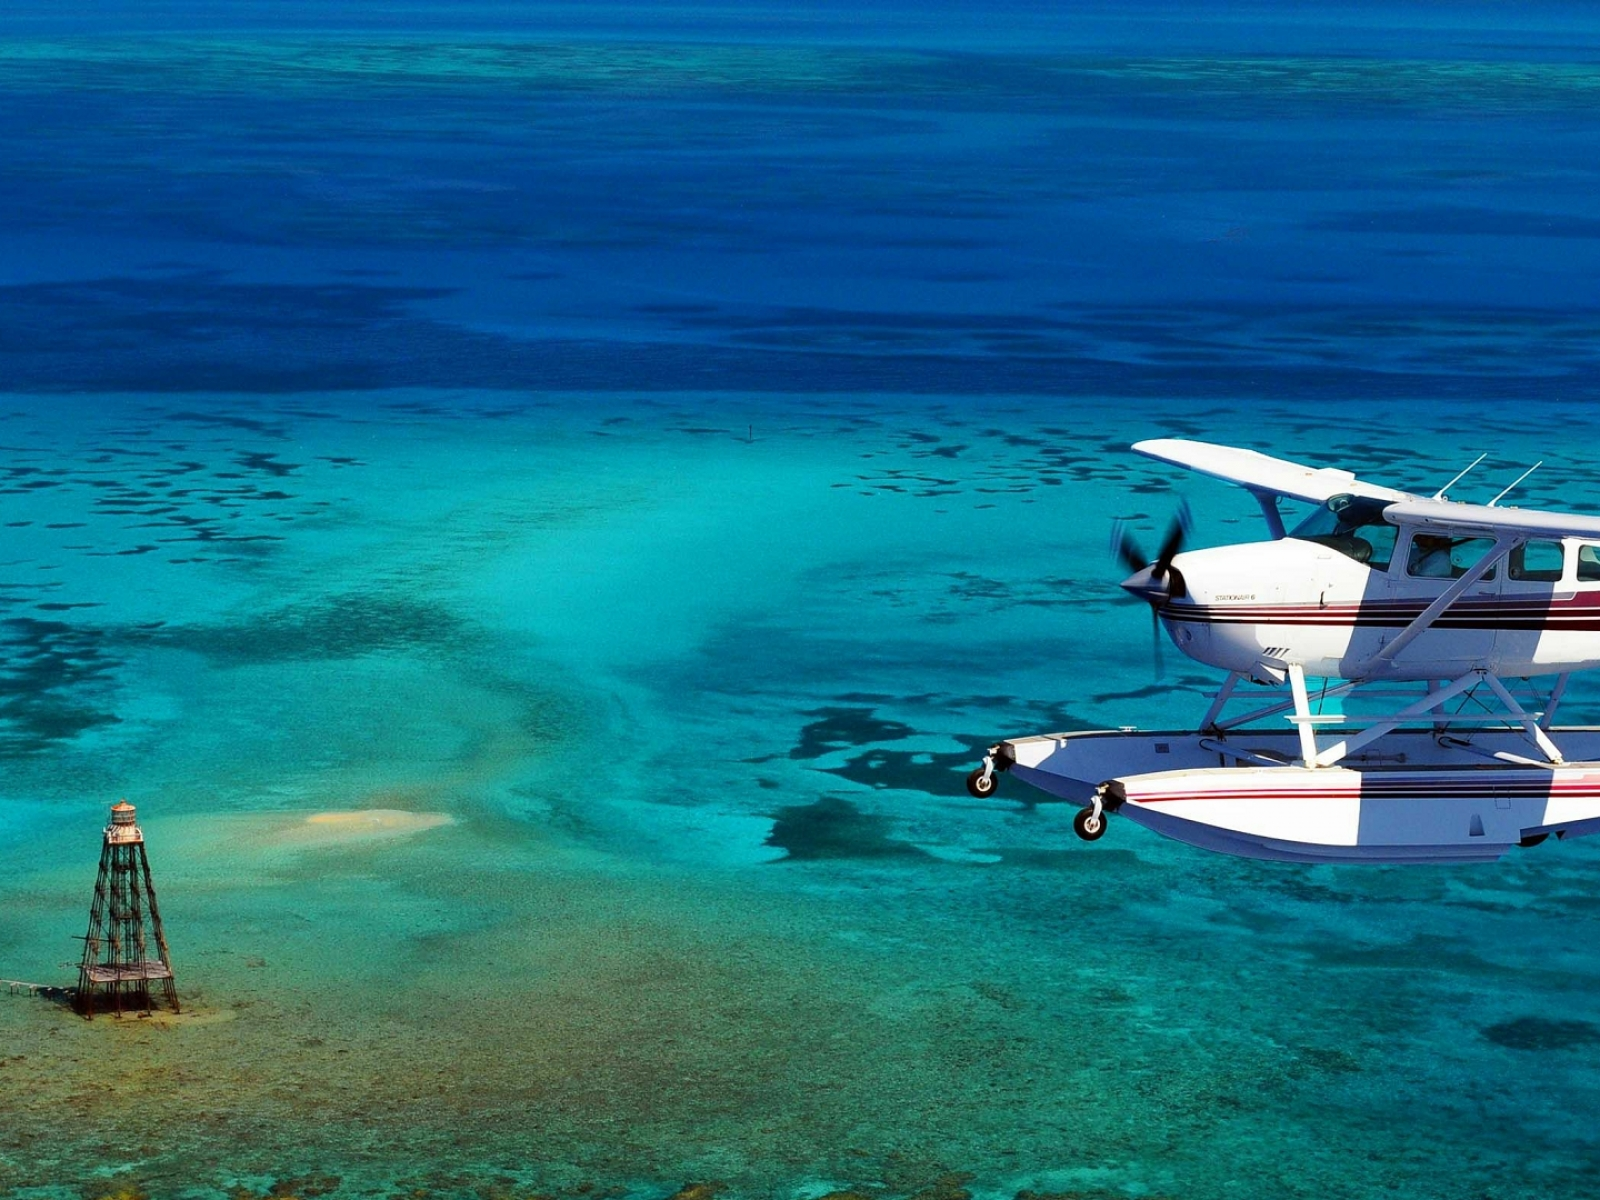 cessna aviation coral reef cessna 206 stationair 1920x1080 wallpaper 1600x1200